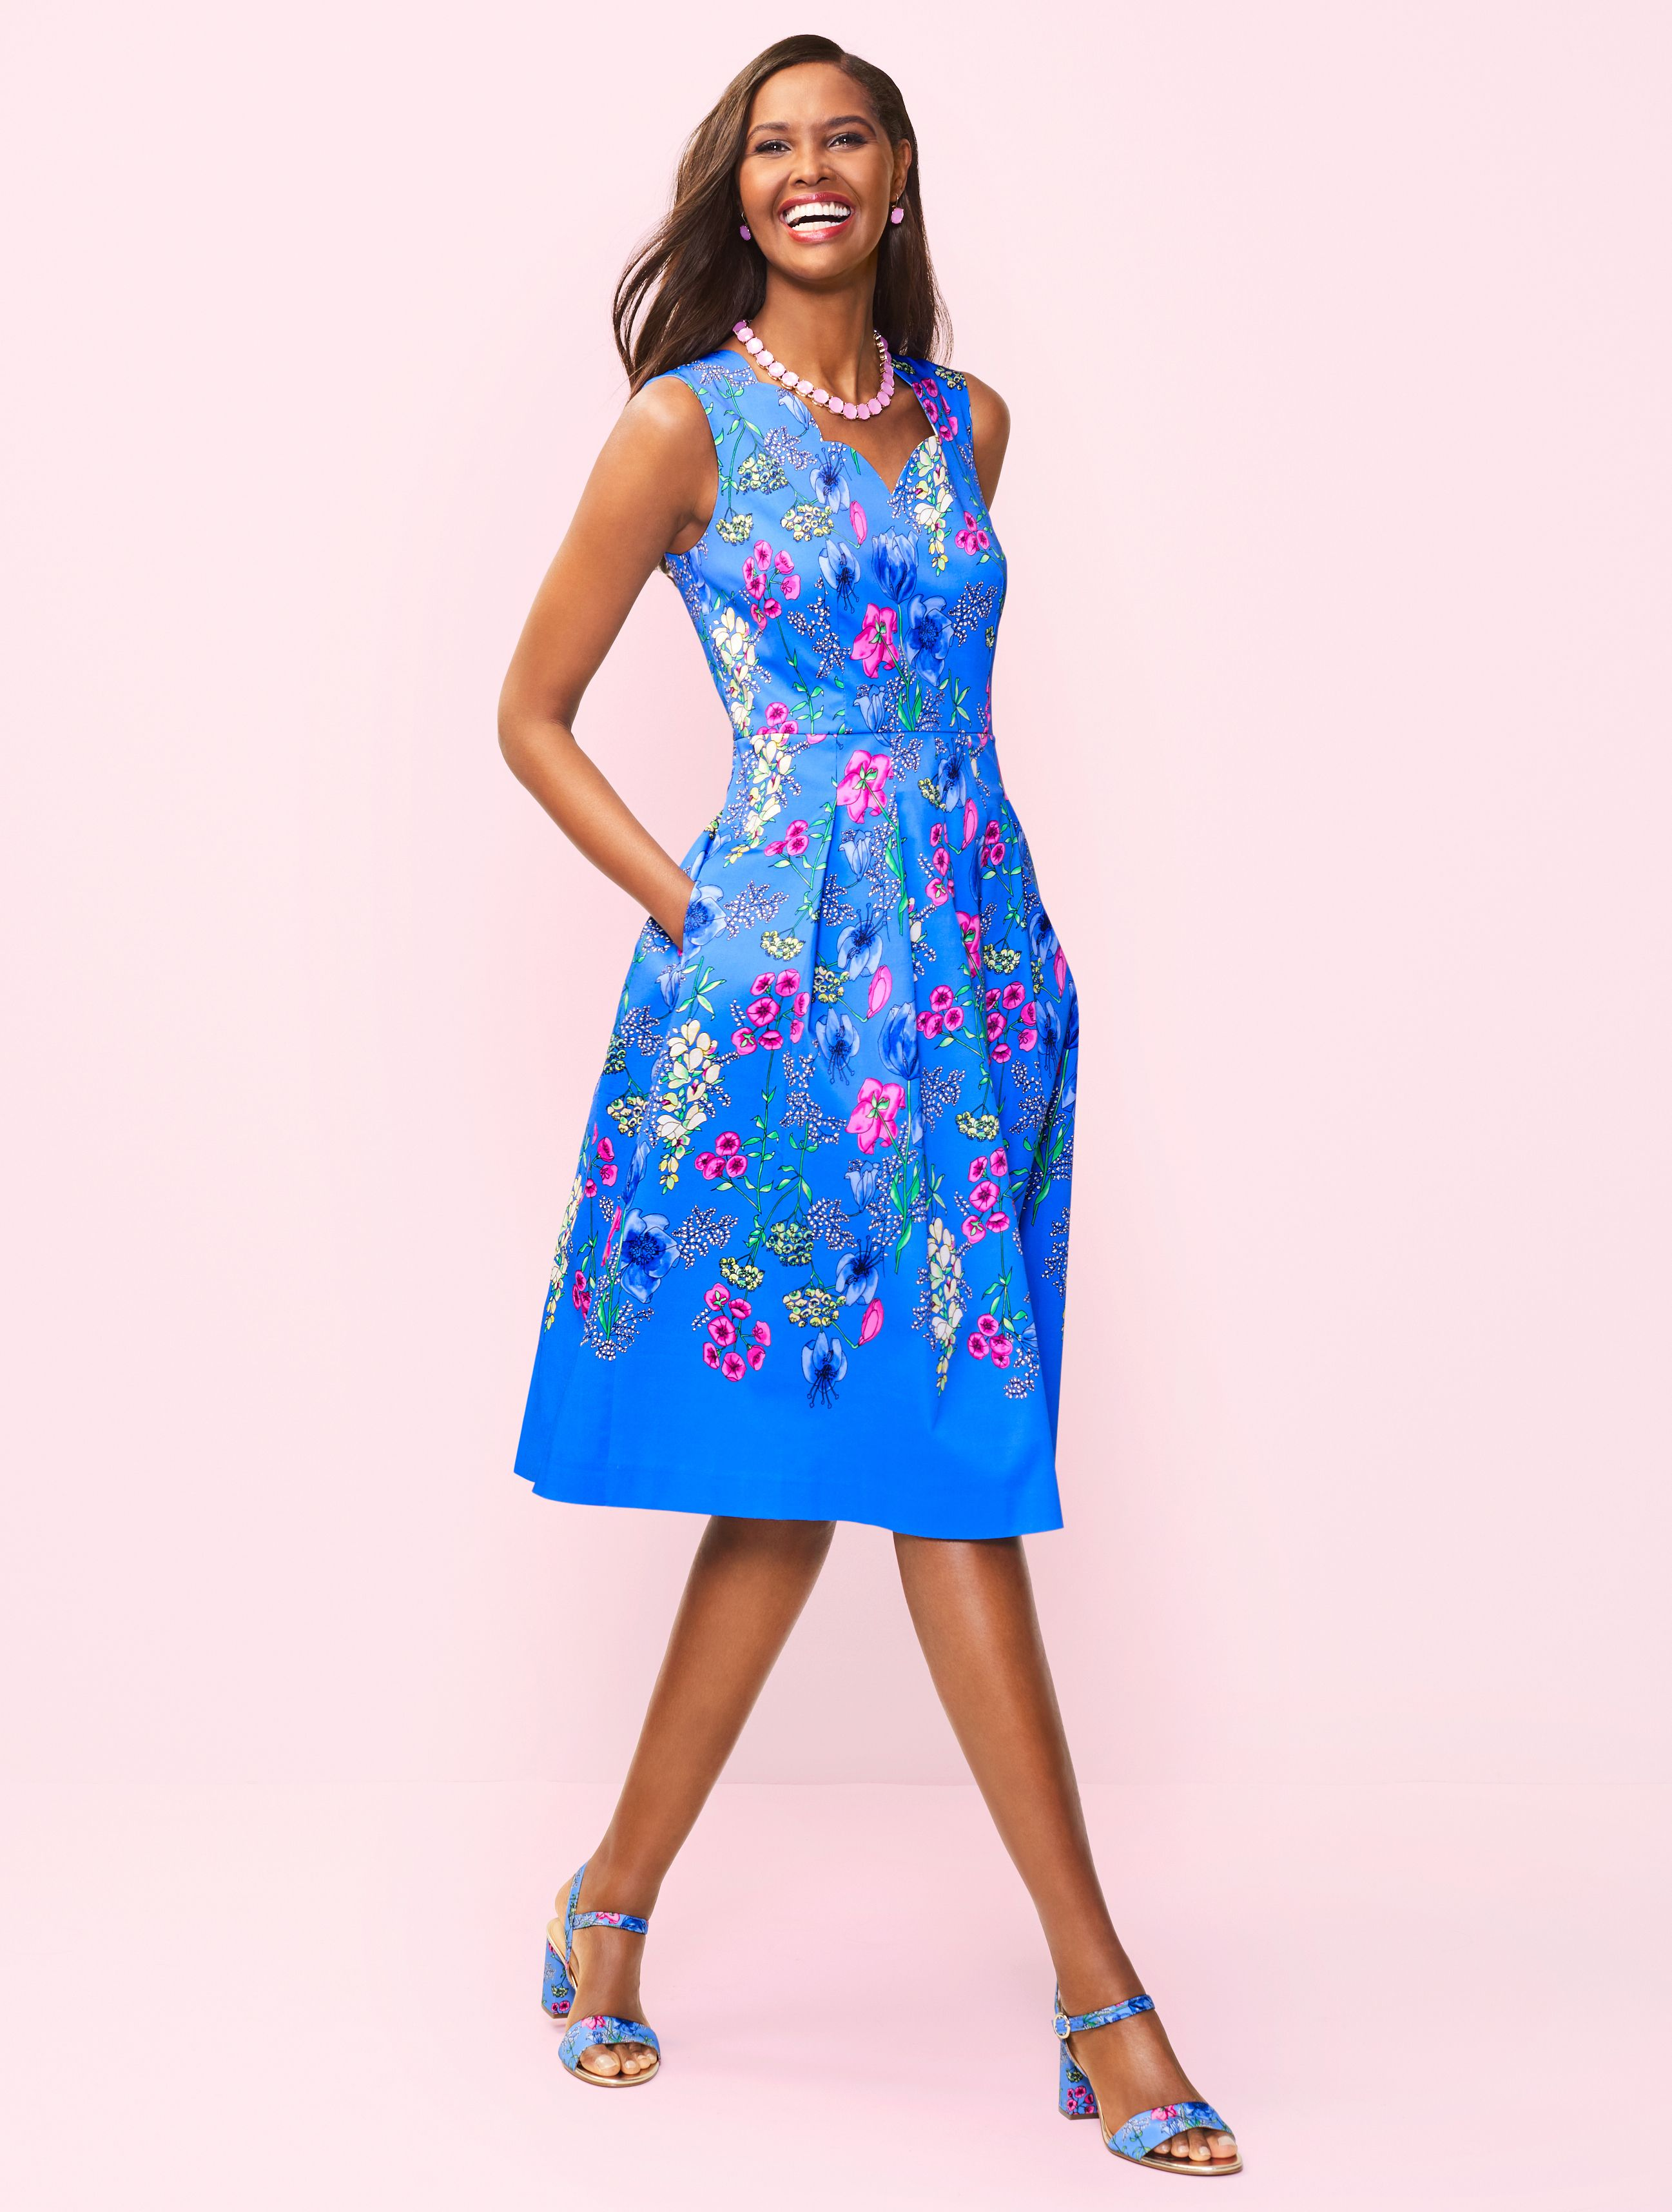 Our Nothing But Blue Skies Sundress Can T Help But Bring A Smile Be Sure To Layer On A Soft Shrug When It Ge Fit And Flare Dress Shrug For Dresses Flare Dress [ 3431 x 2594 Pixel ]